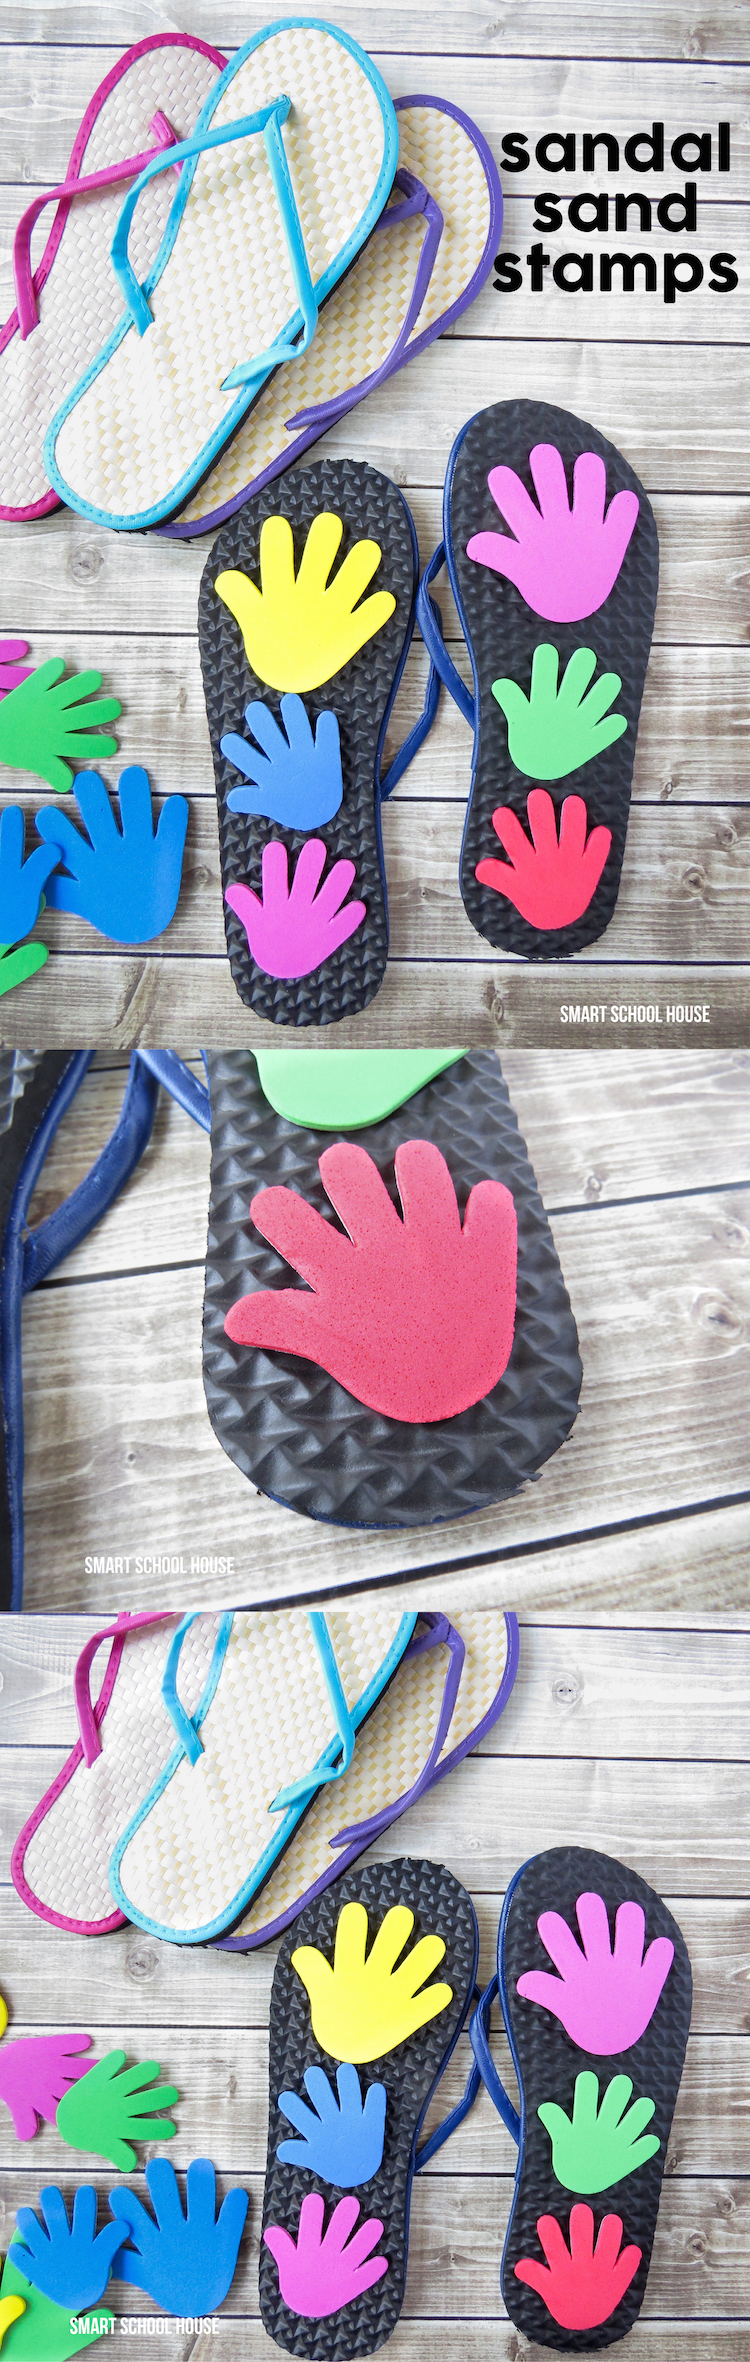 "DIY Sandal Sand Stamps. Walk around at the beach and leave ""high-fives"" all over the place!"